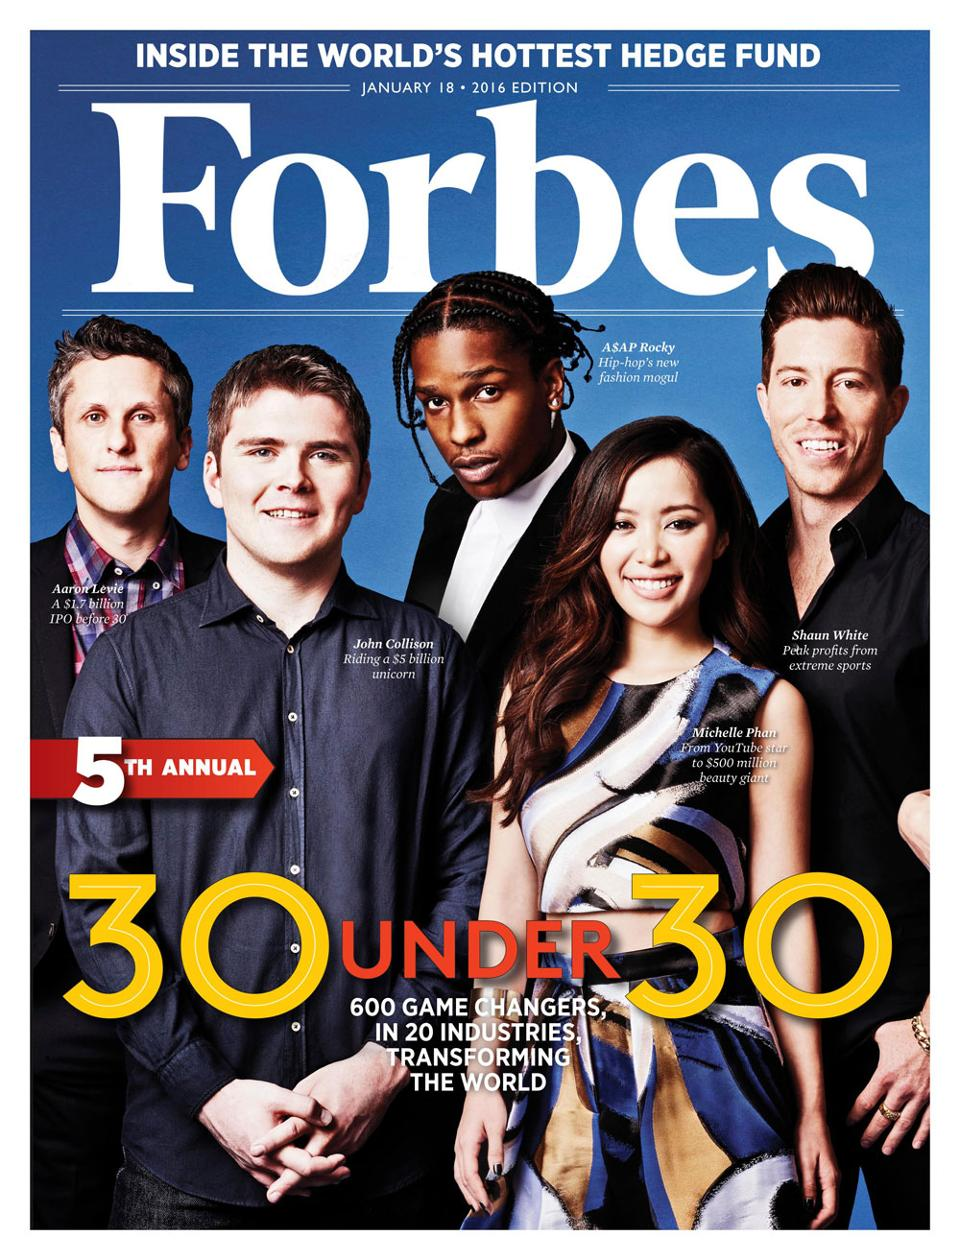 1222_forbes-cover-011816-30-under-30_1000x1313.jpg